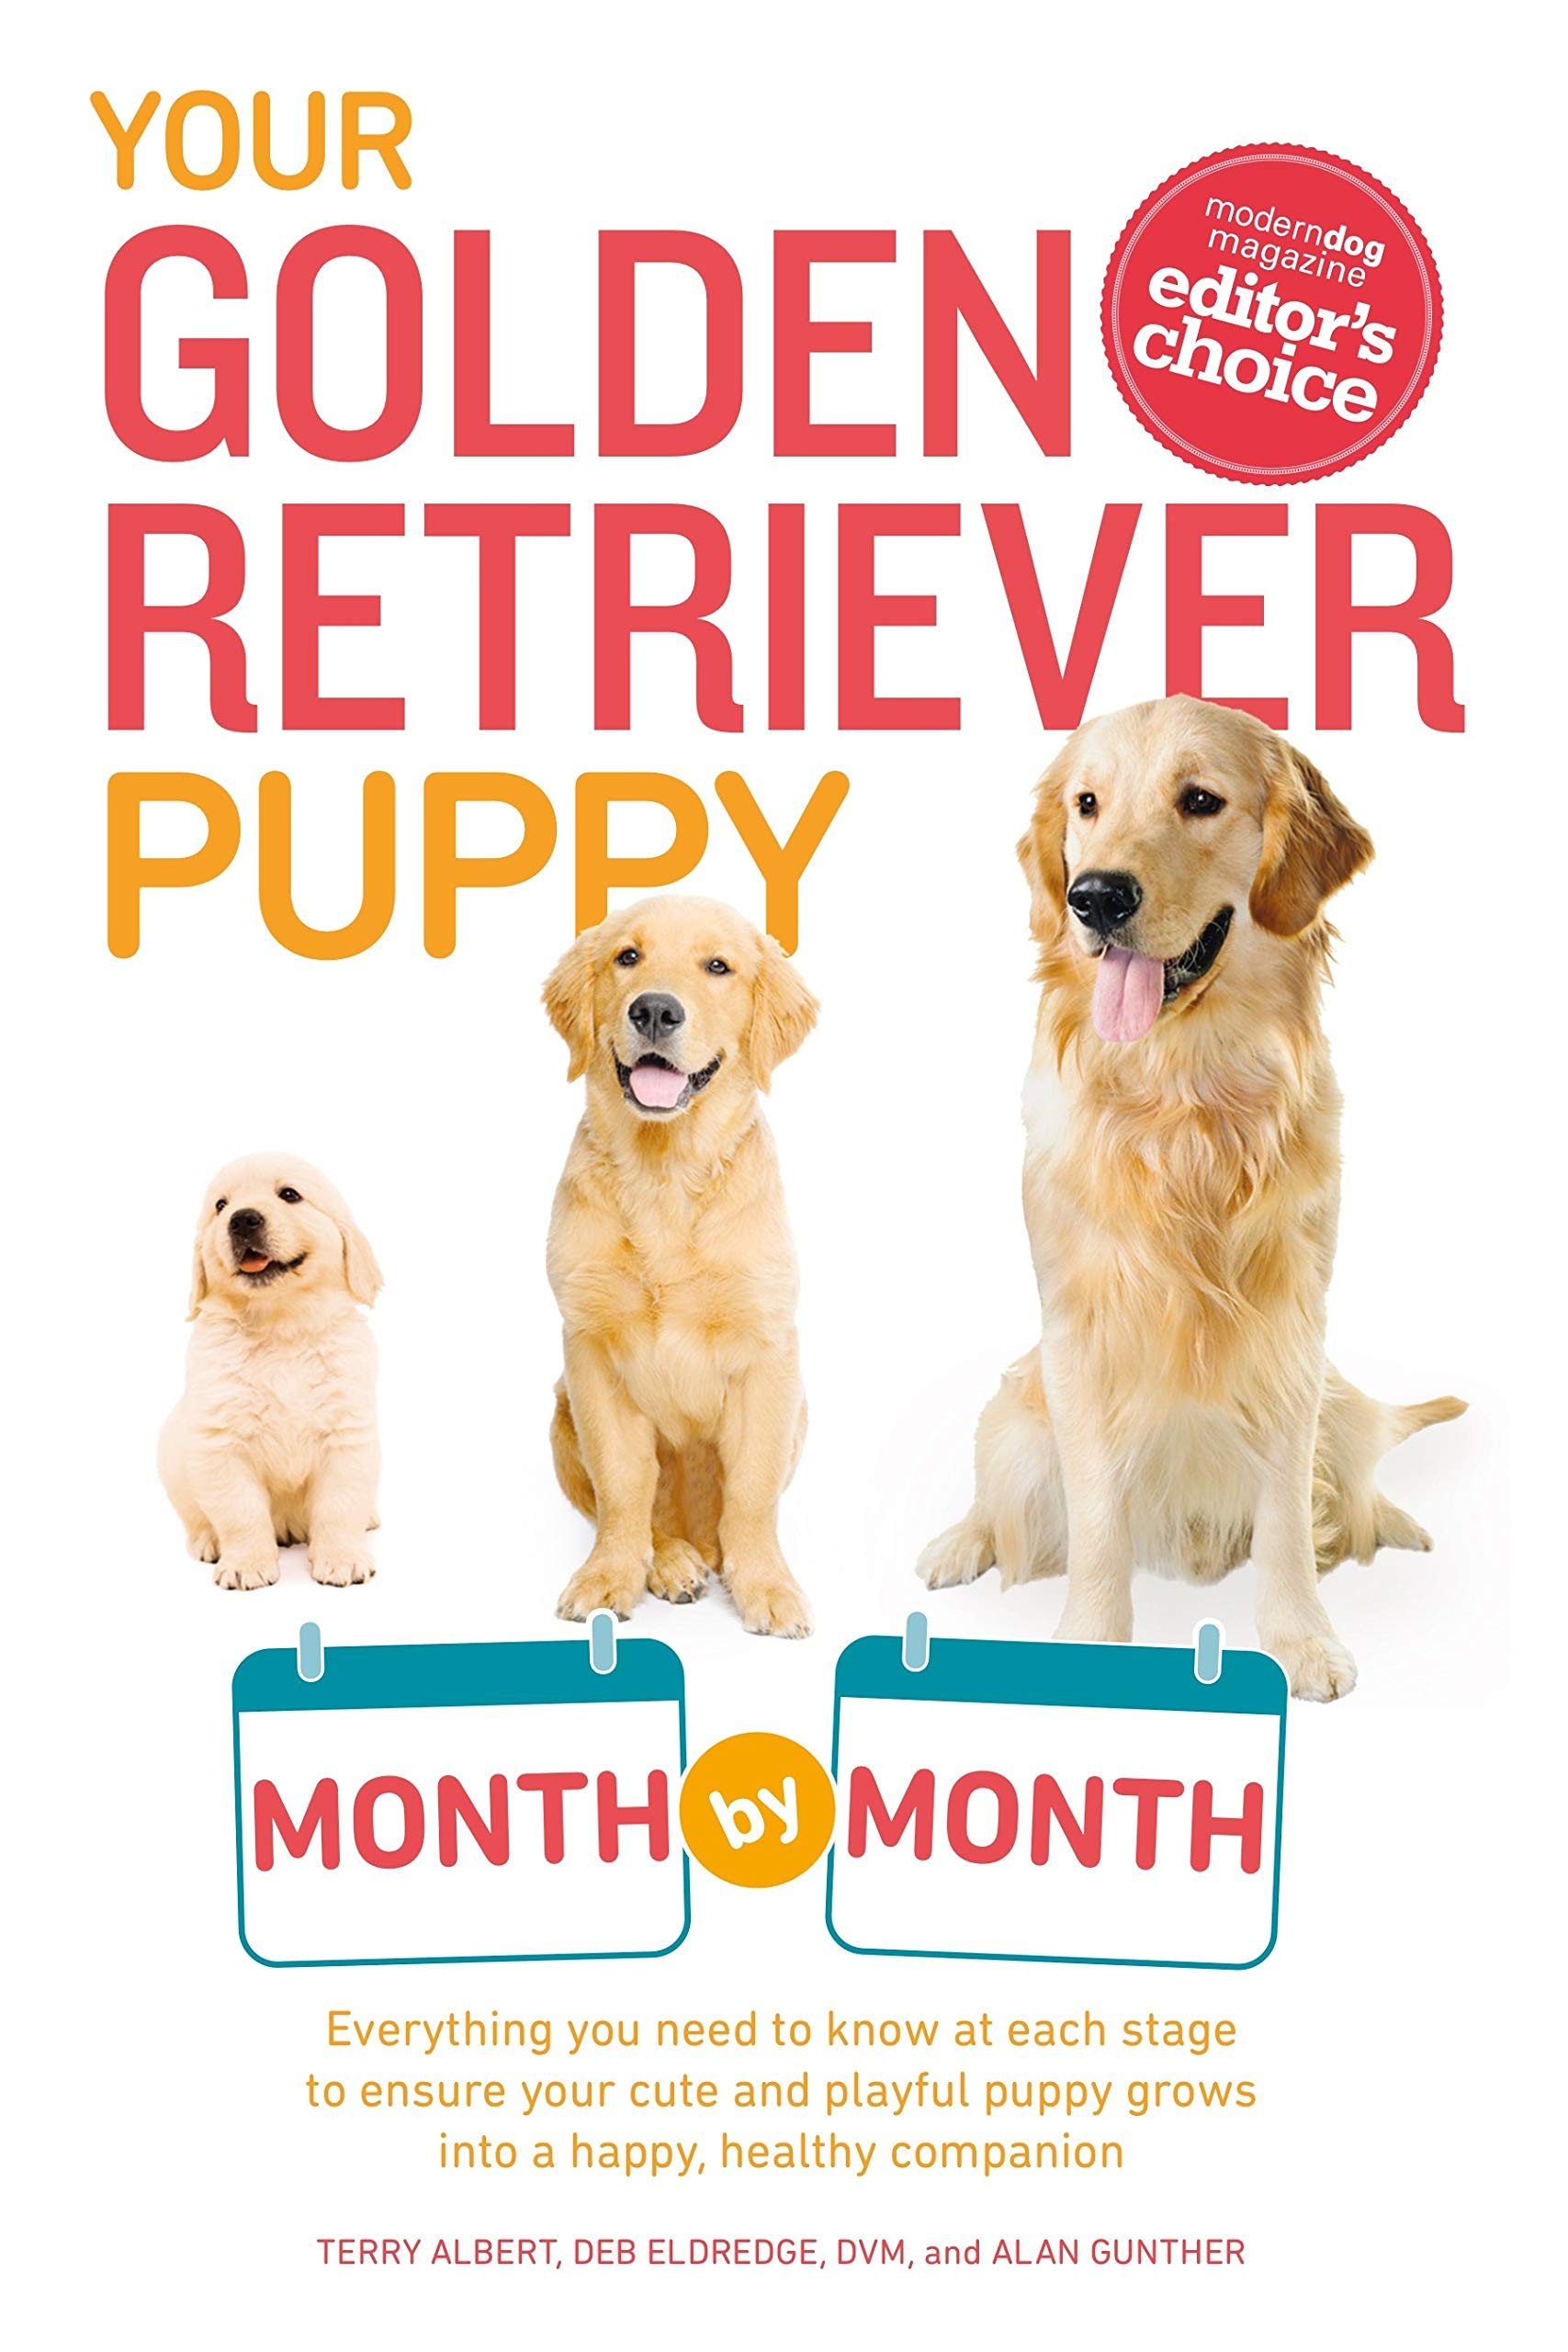 Your Golden Retriever Puppy Month by Month: Everything You Need to Know at Each Stage to Ensure Your Cute and Playful Puppy (Your Puppy Month by Month) by Albert Terry